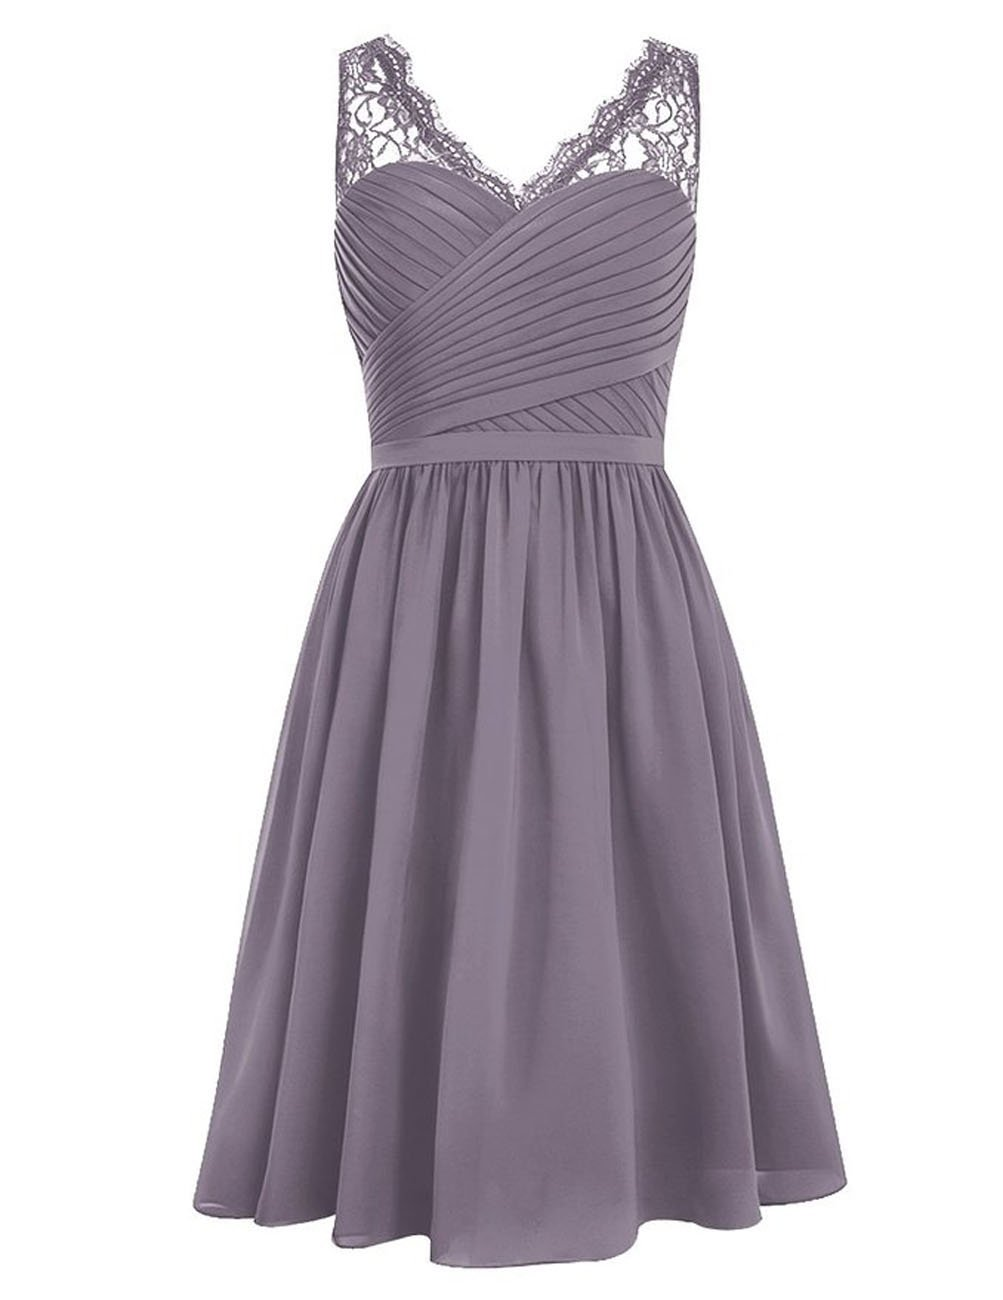 Cdress Chiffon Short Bridesmaid Dresses Lace Cocktail Gowns V-Neck Homecoming Dress Grey US 22W